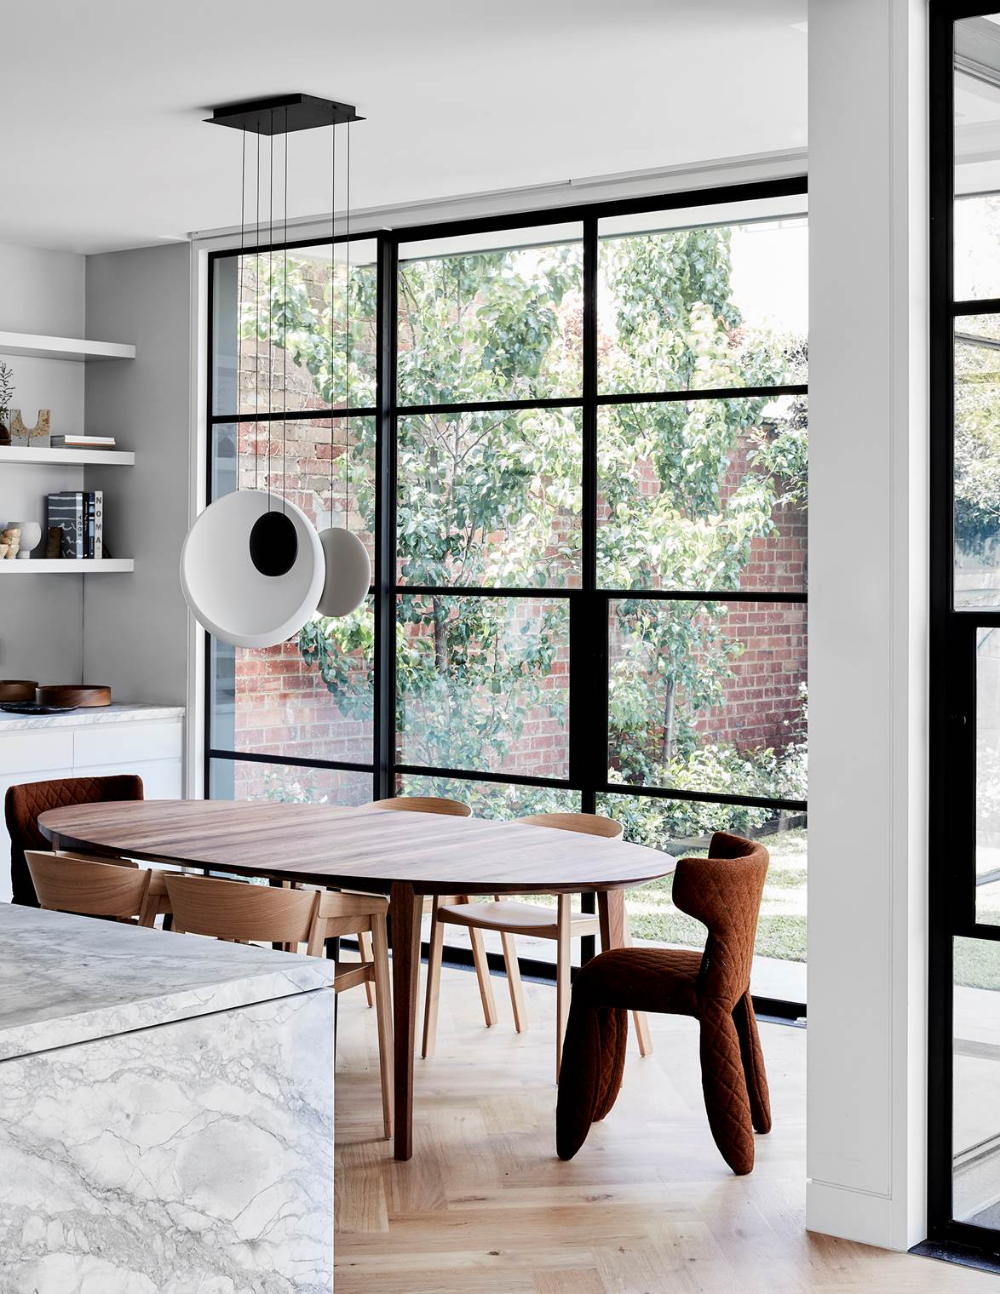 10 light-filled spaces to inspire | Australian interior ...